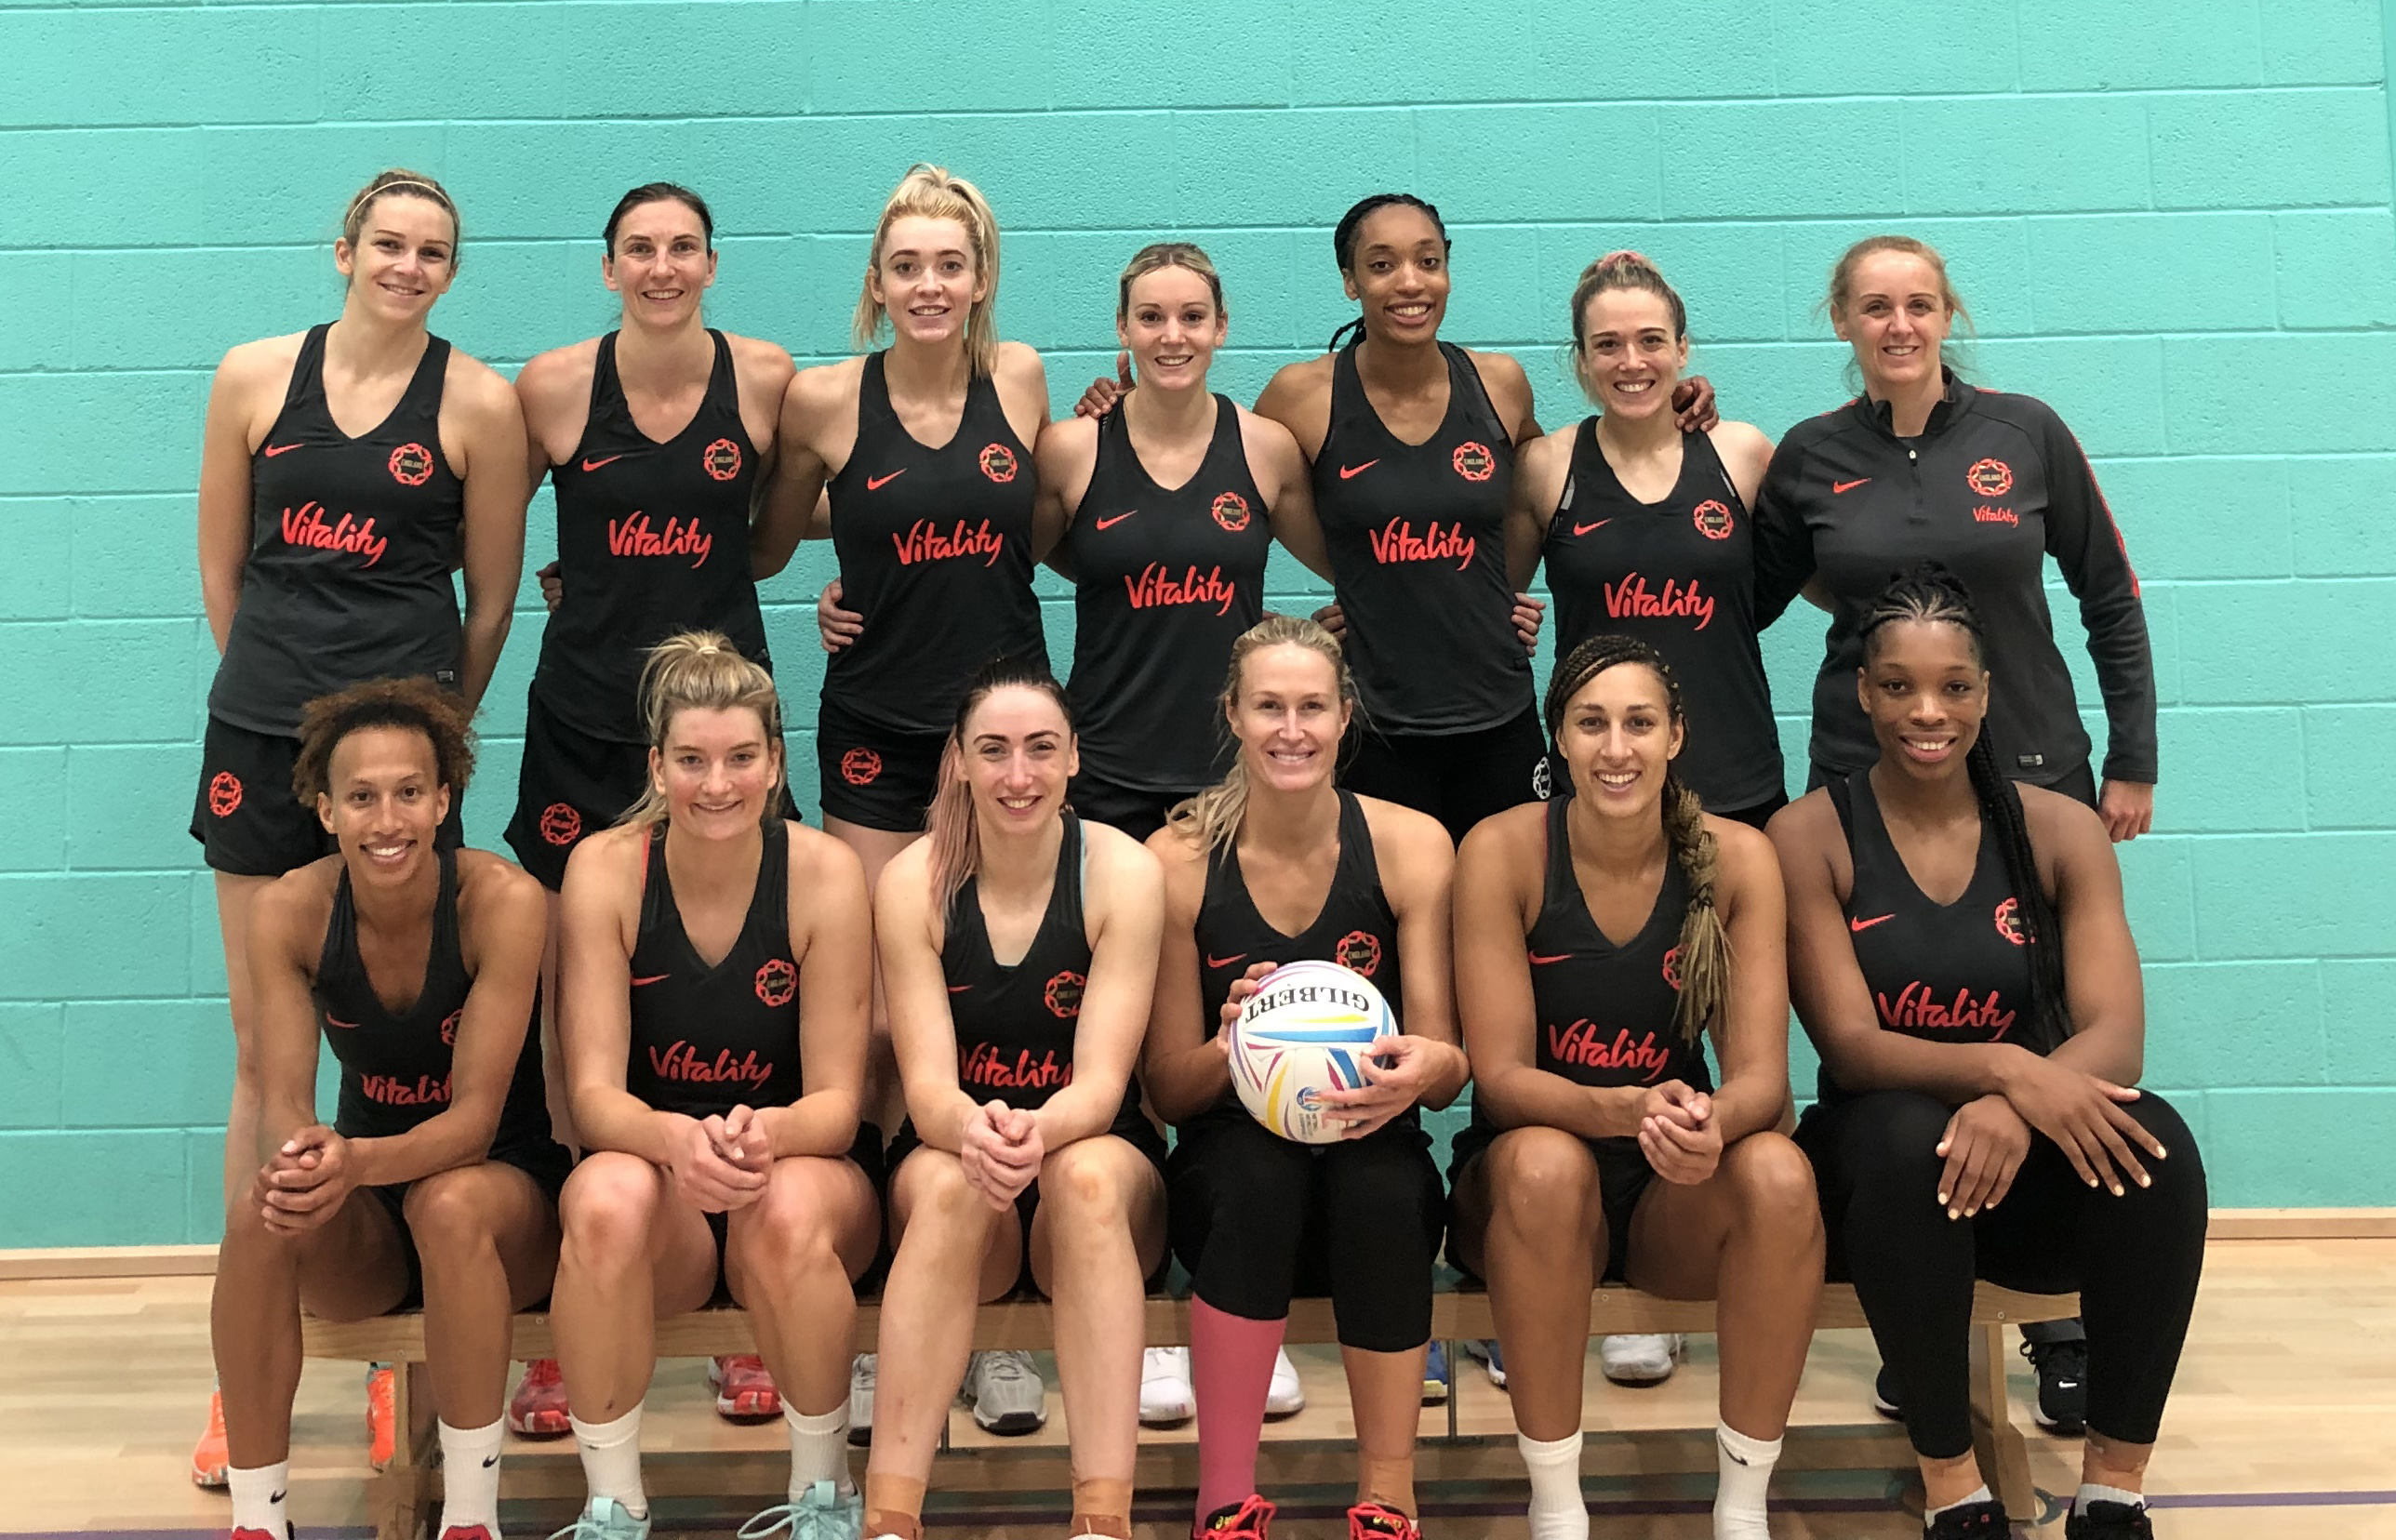 The England netball team at Platt Lane